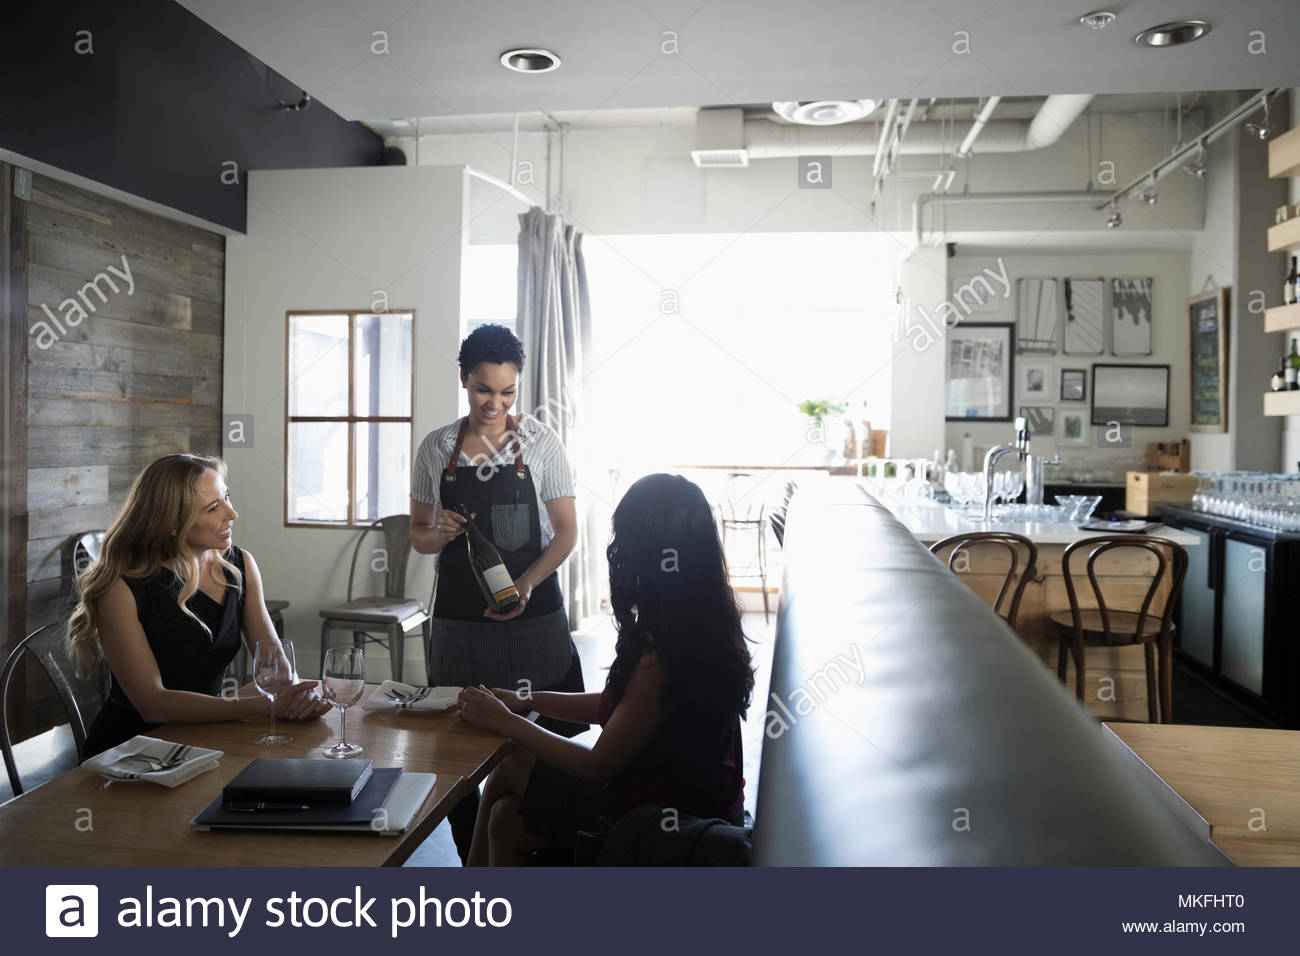 Waitress serving wine to women in cafe - Stock Image